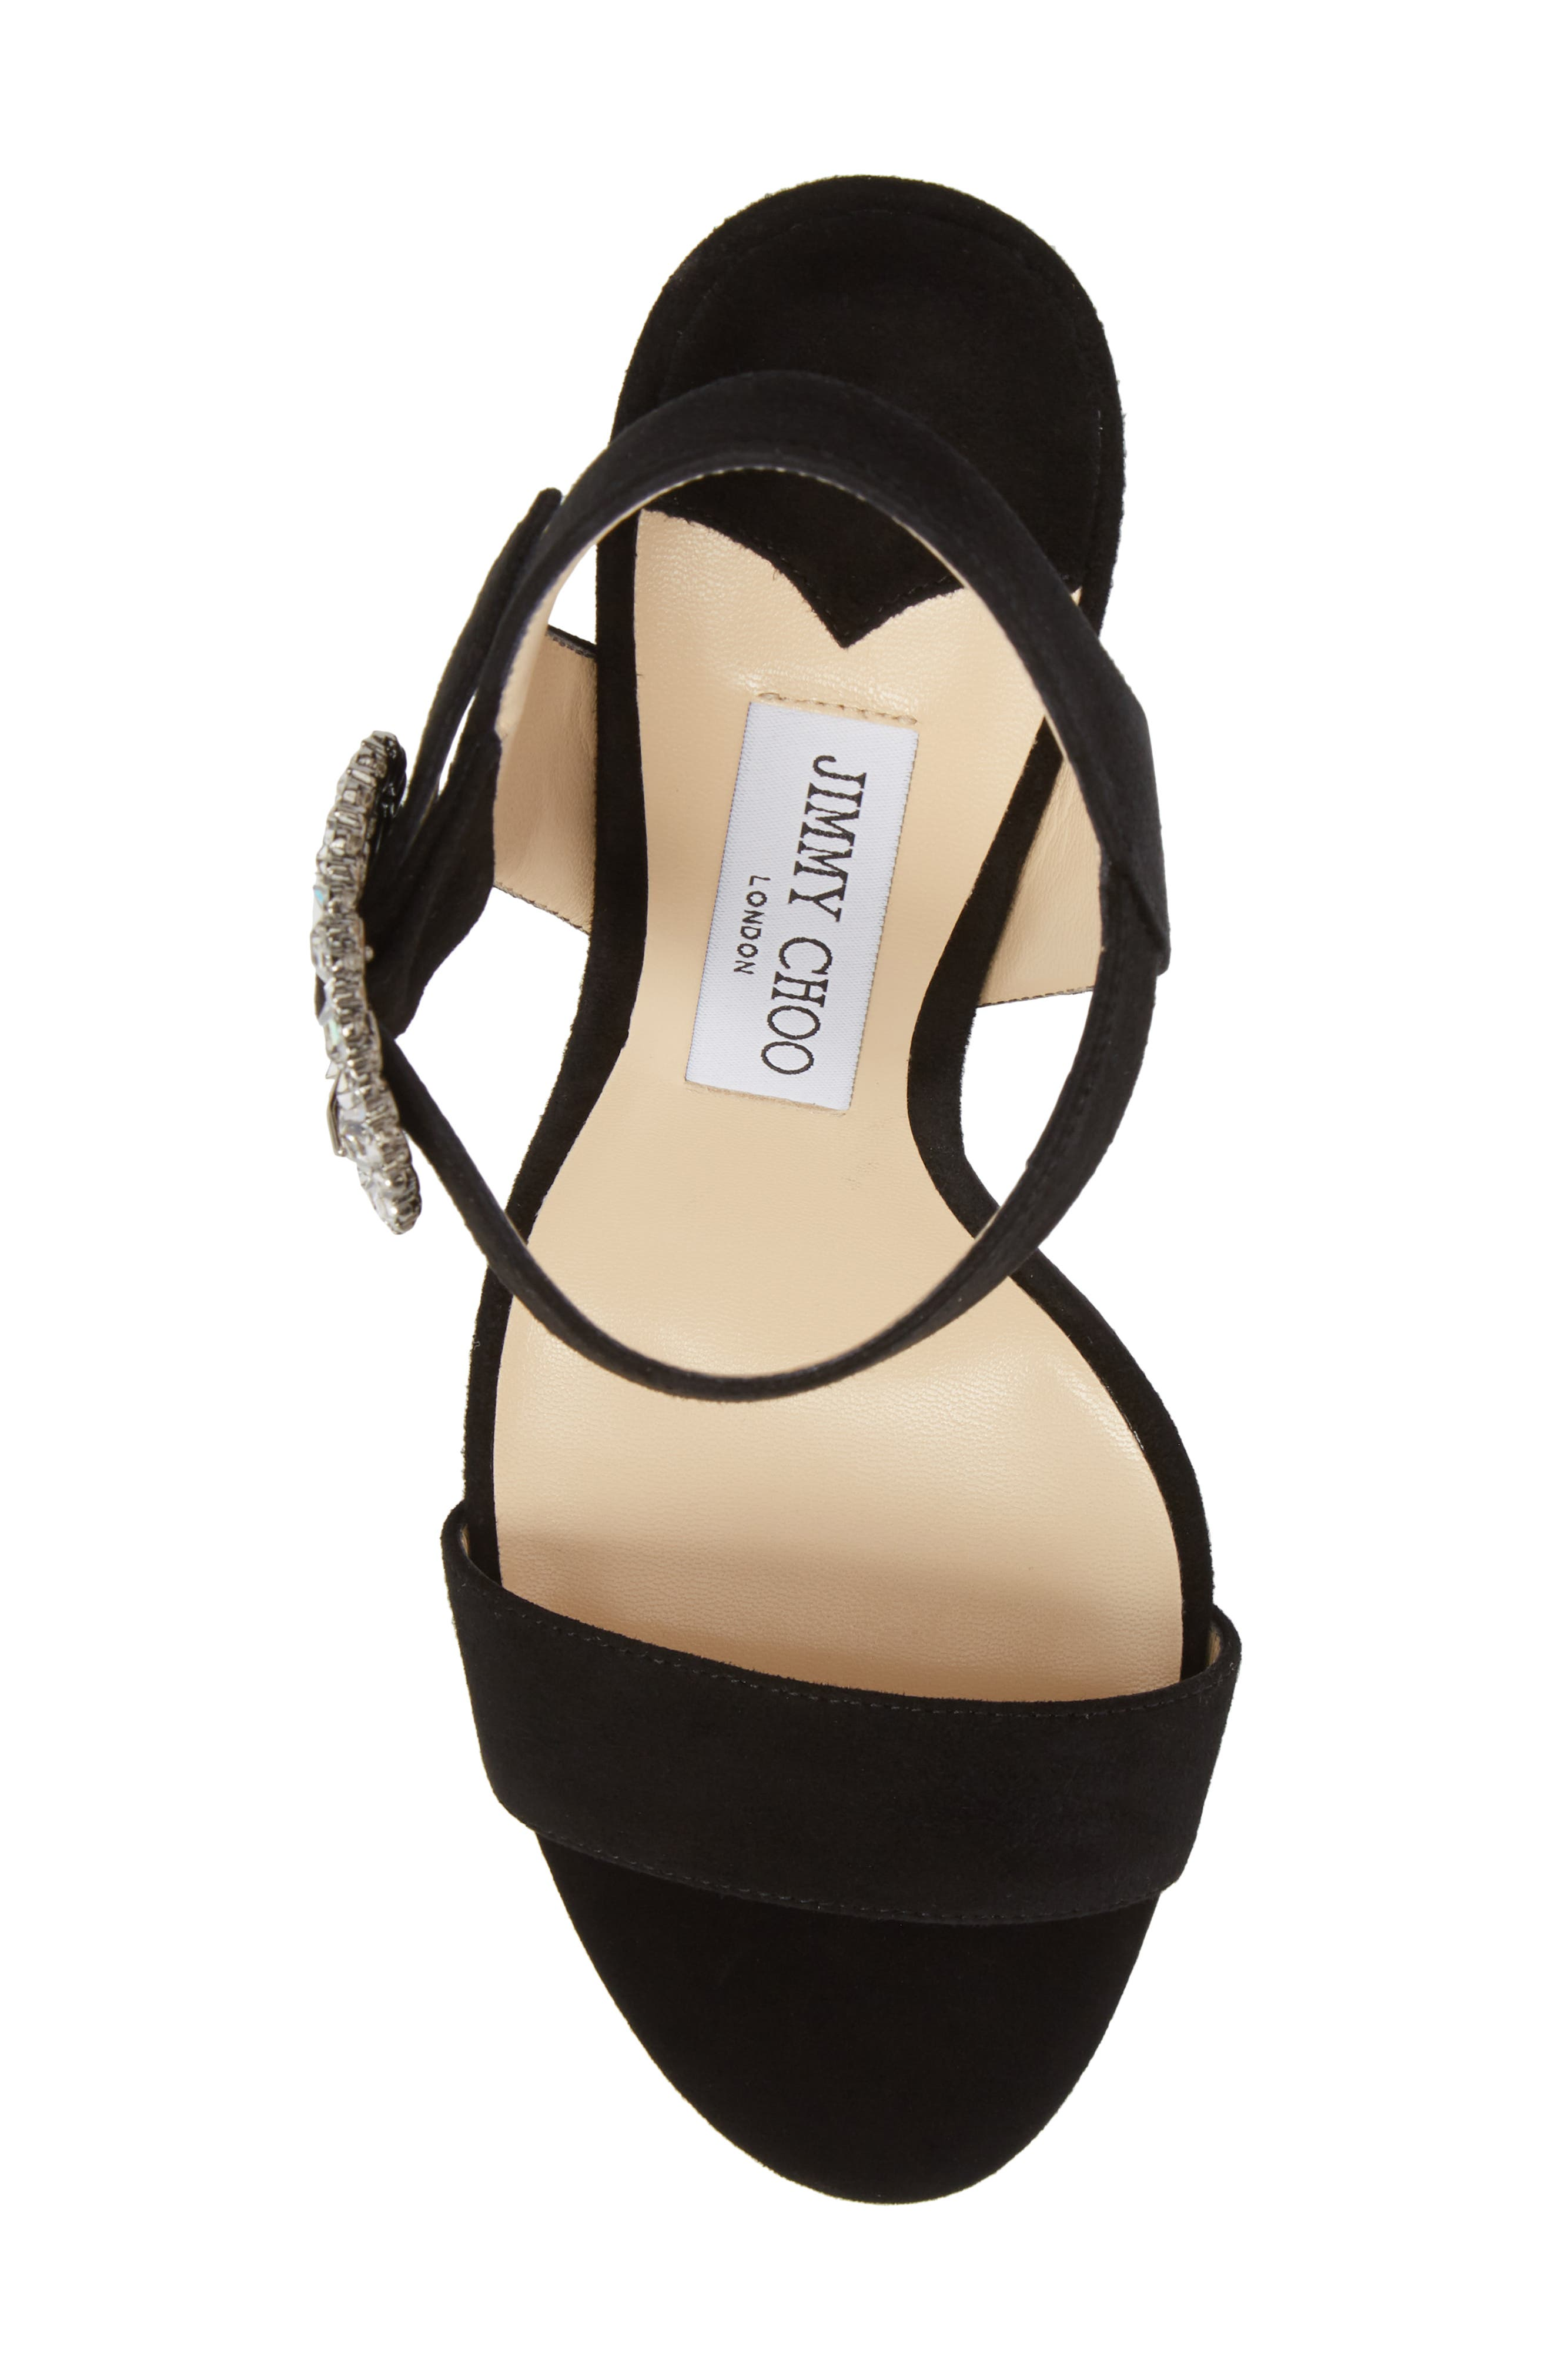 Mischa Crystal Buckle Sandal,                             Alternate thumbnail 5, color,                             Black